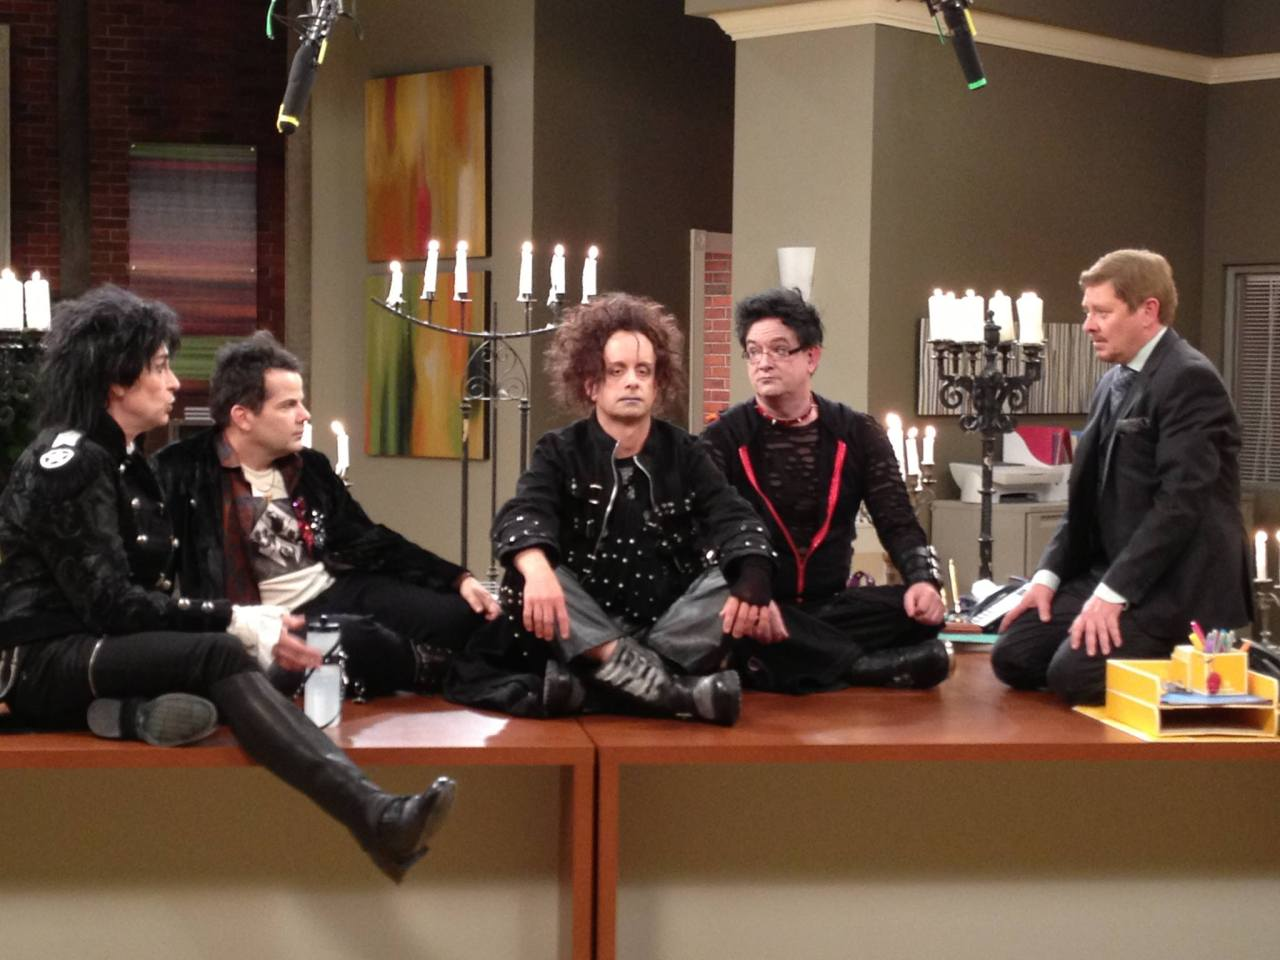 Kids in the Hall at Spun Out Set to air in 2014.